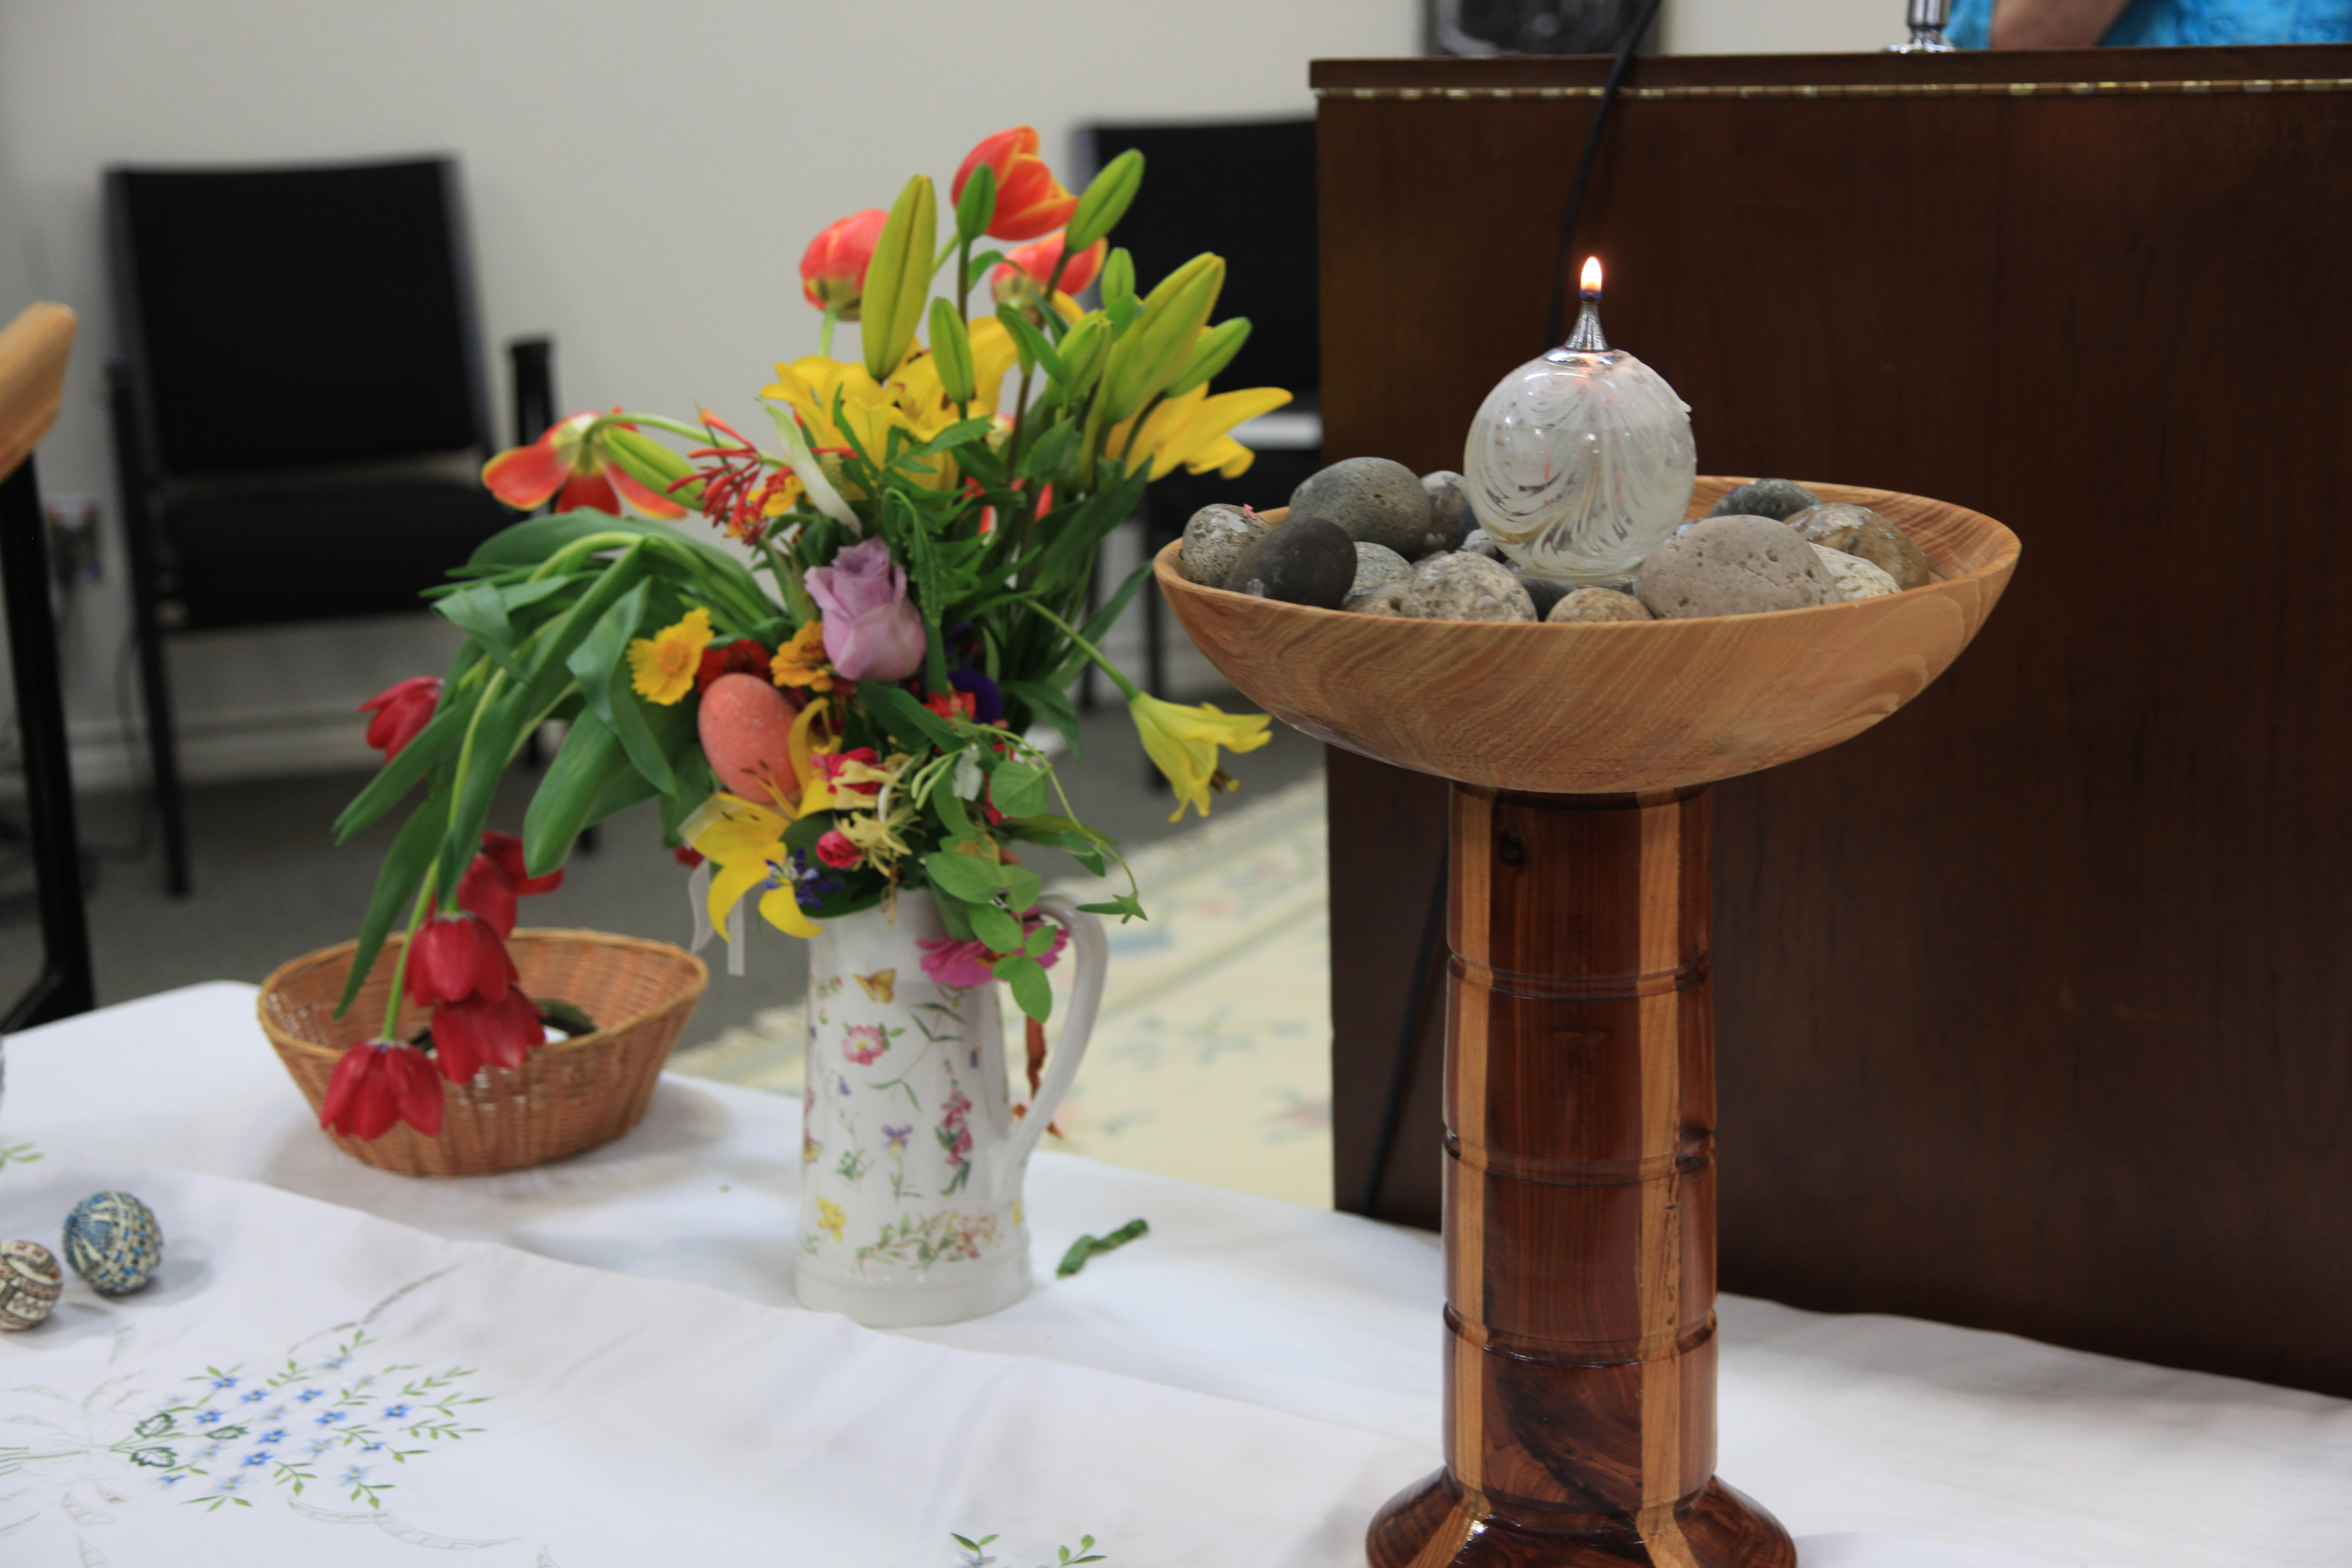 Unitarian Lamp and Flowers